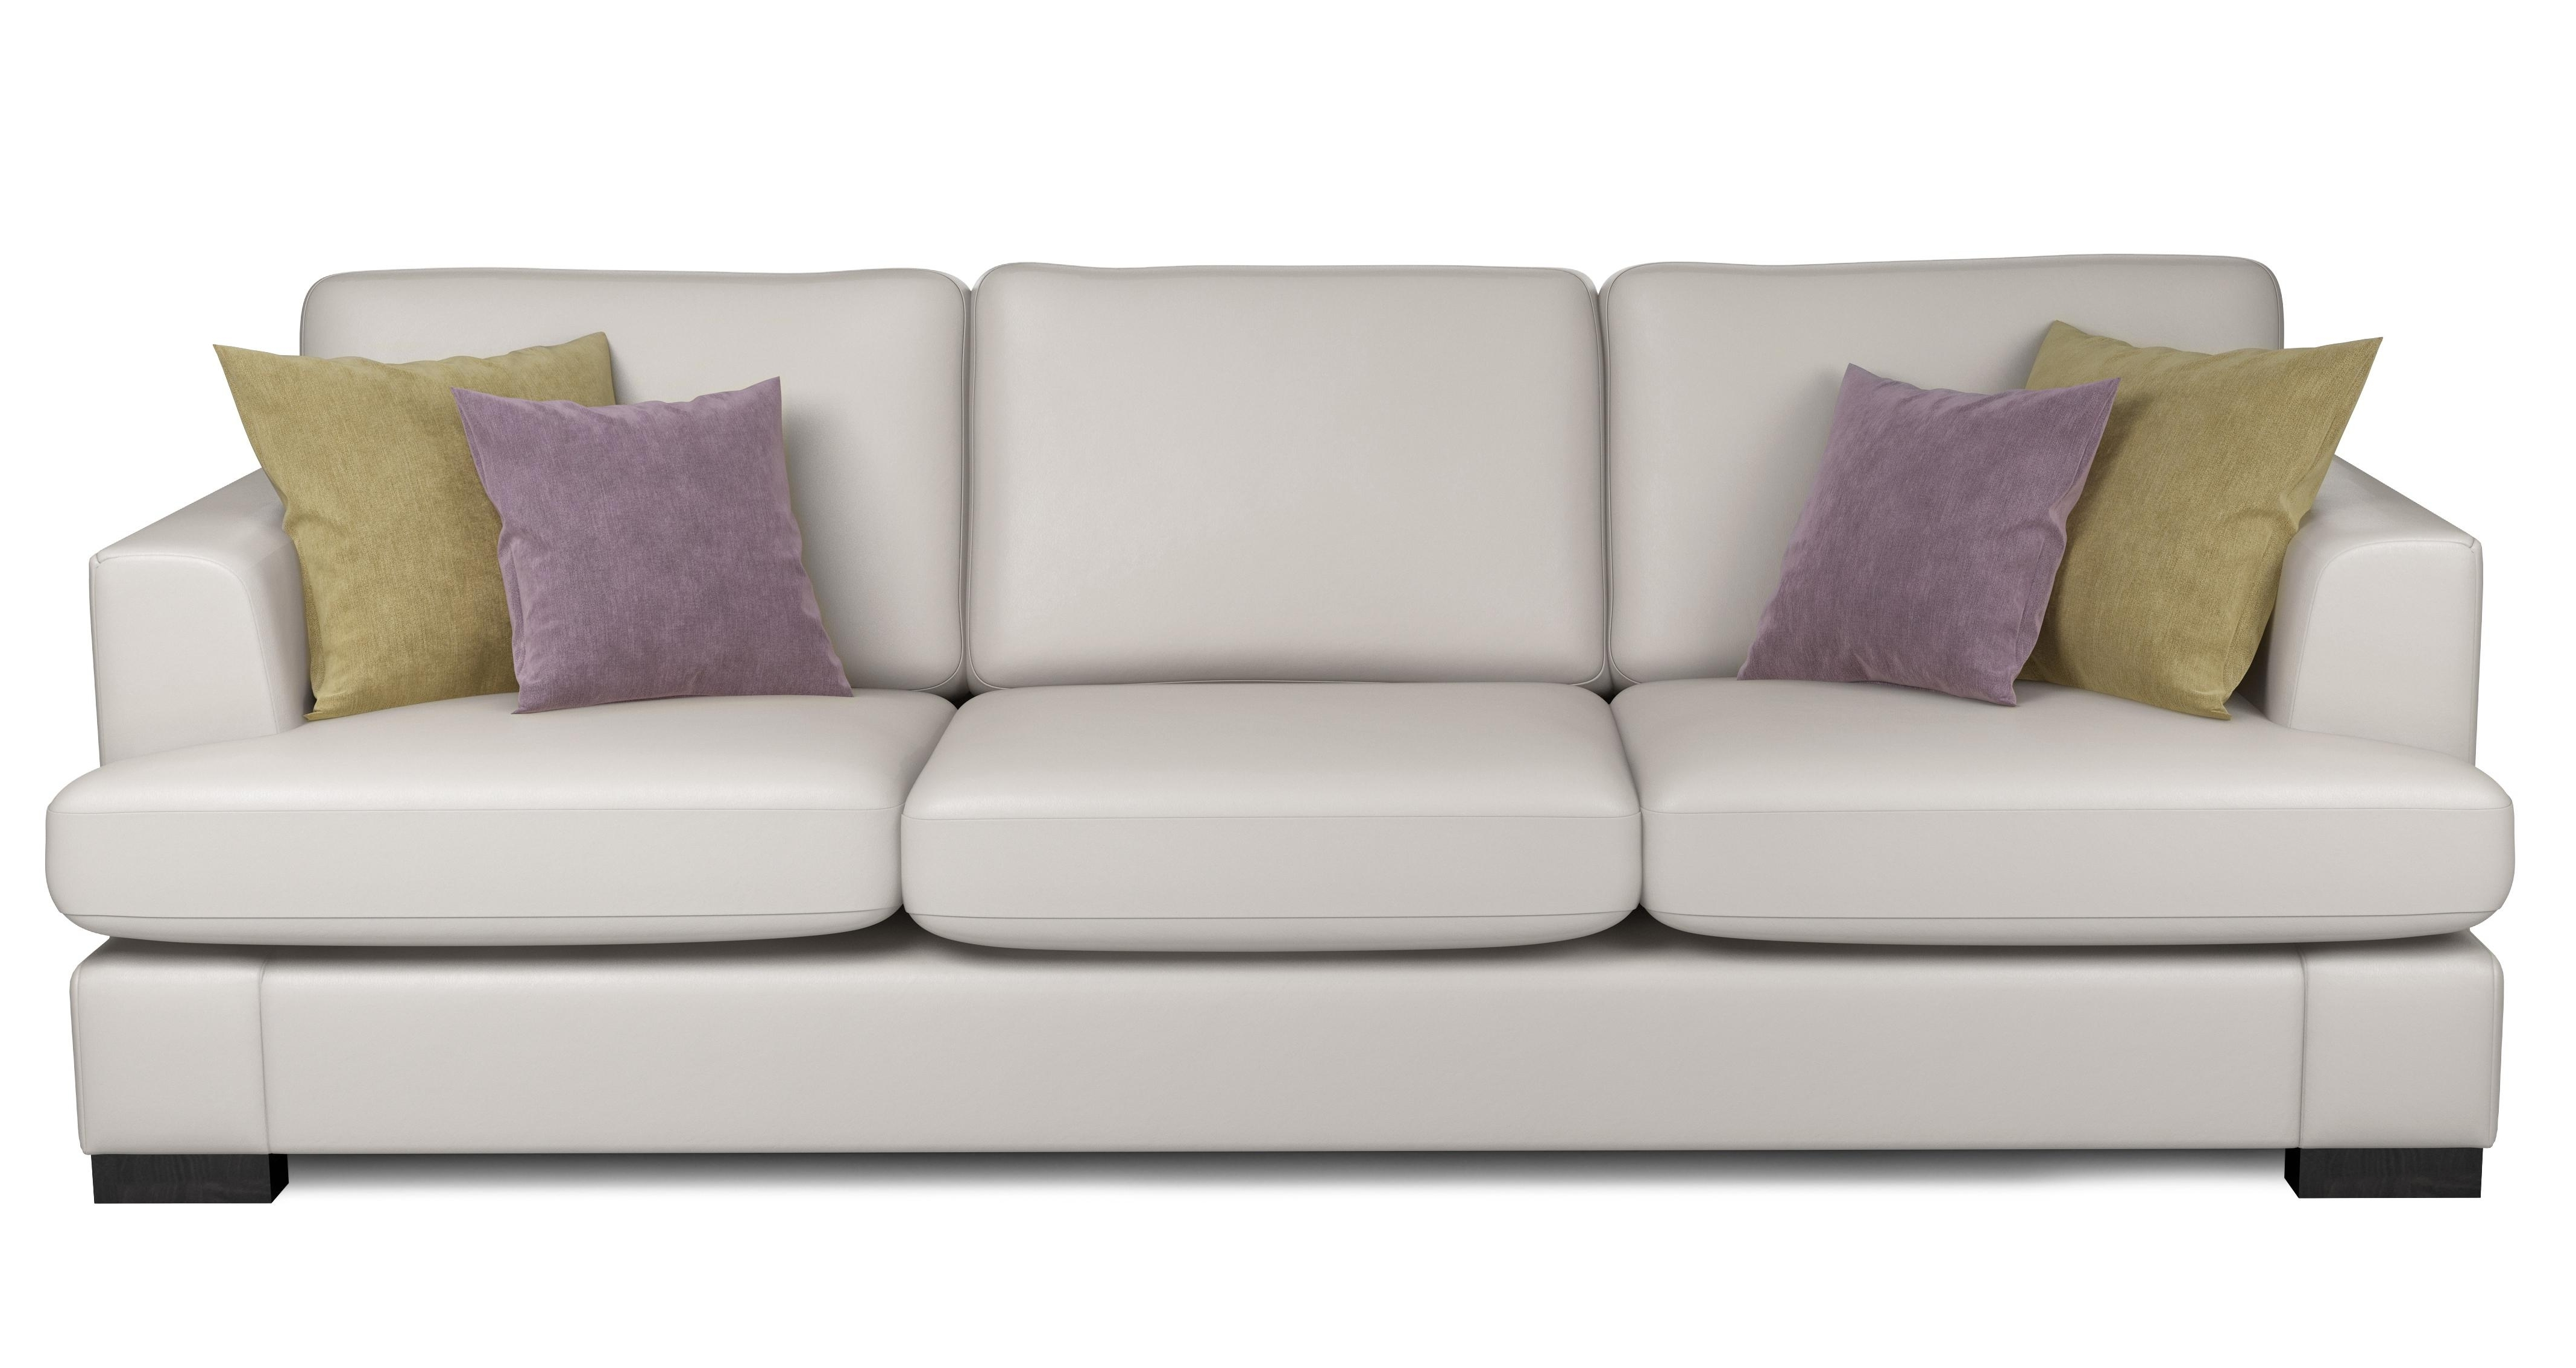 4 Seater Sofas With Regard To Latest 4 Seater Leather Sofa – Home And Textiles (Gallery 4 of 15)